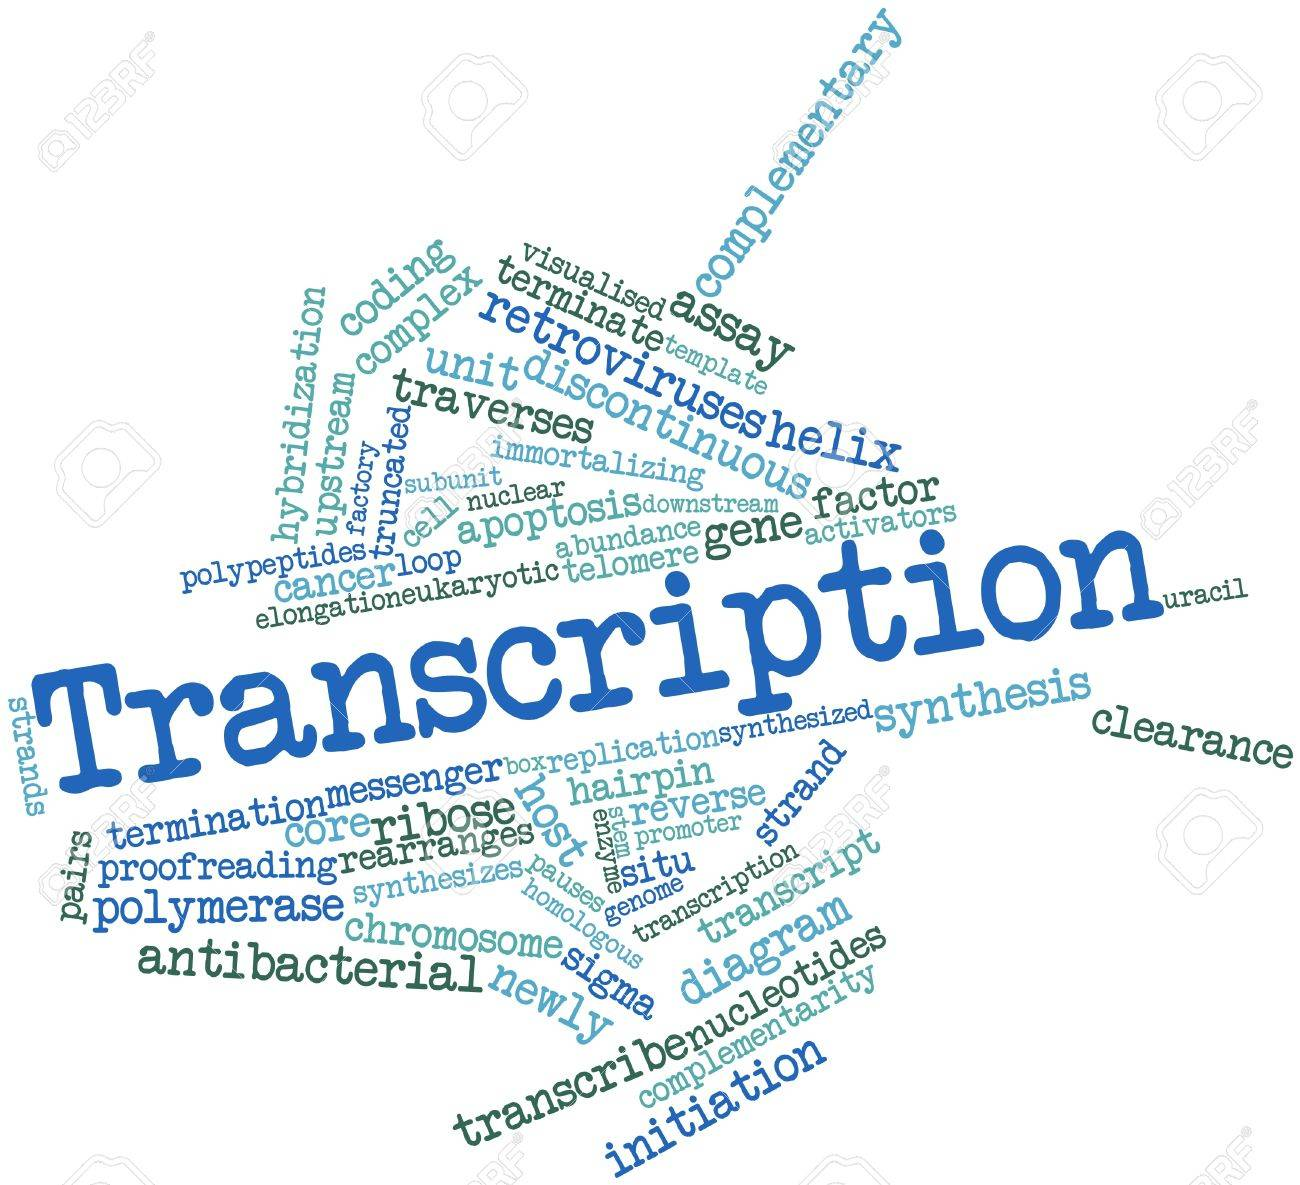 high quality video and audio transcription